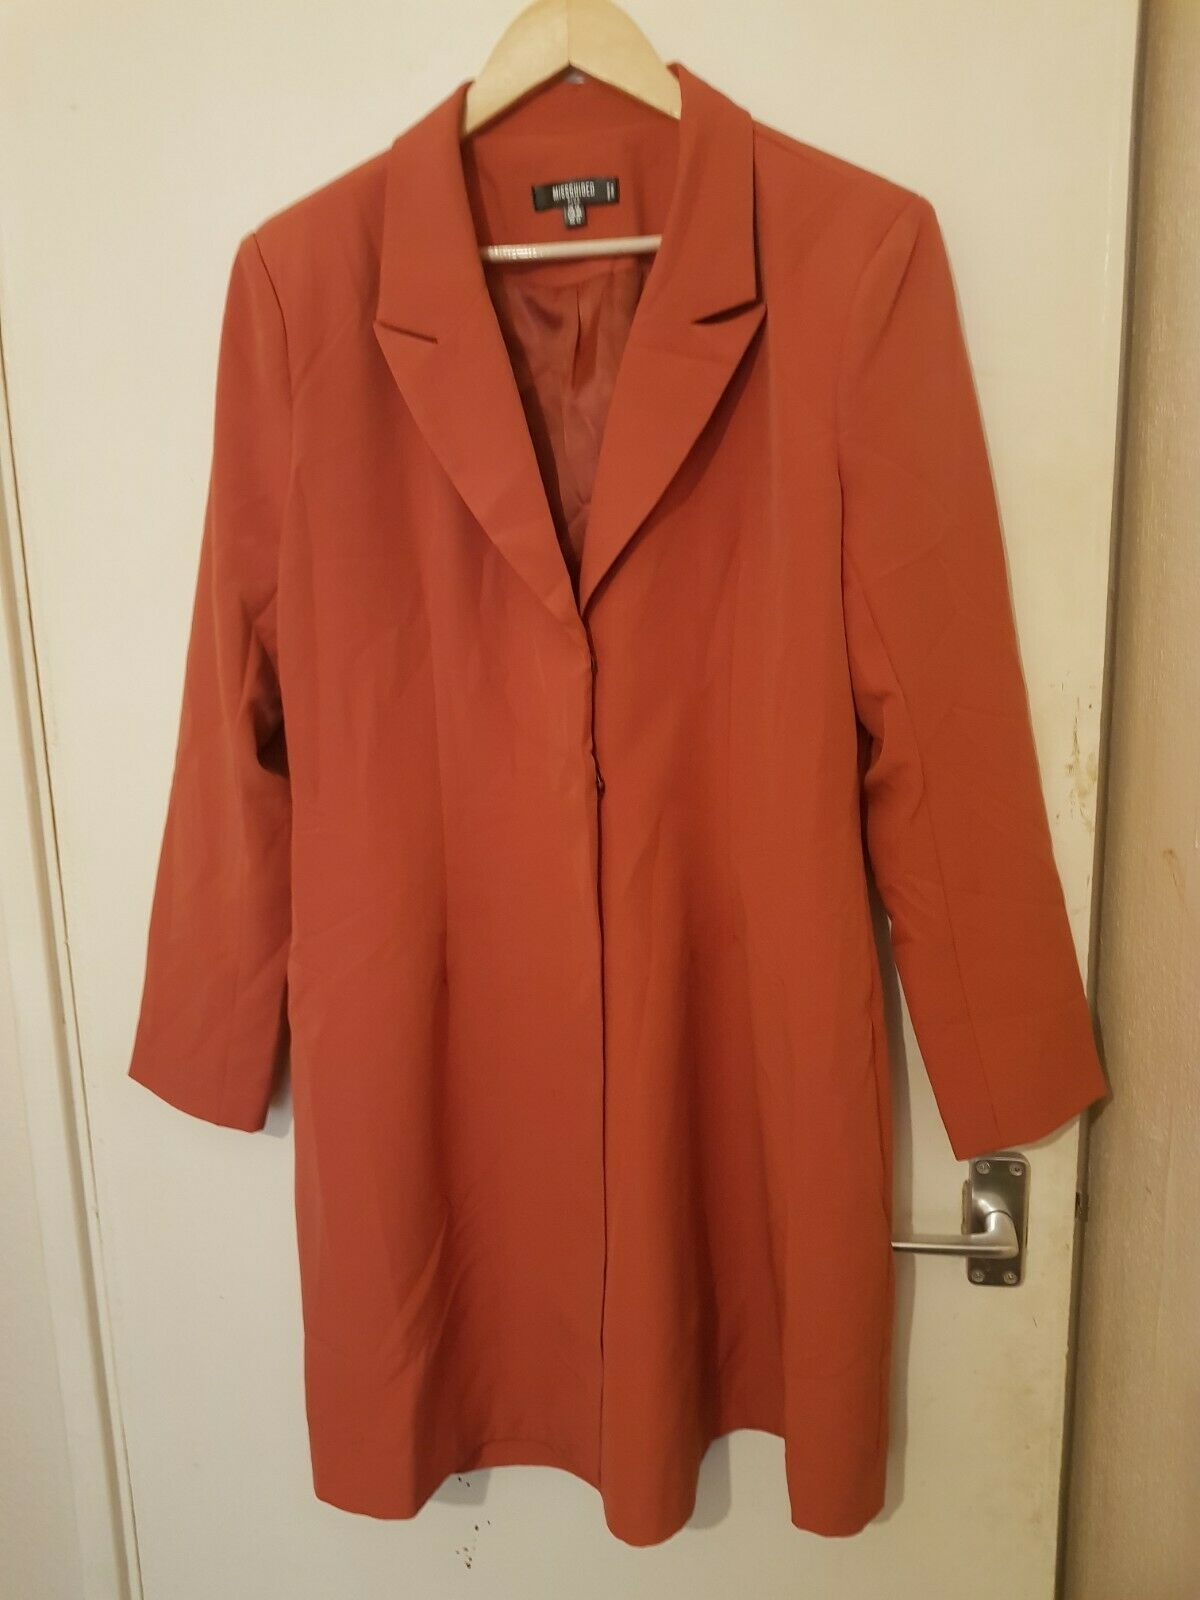 Missguided Plus, Womens Jacket/Coat, Color: Peach/Pink, Size: UK-16Plus, Used